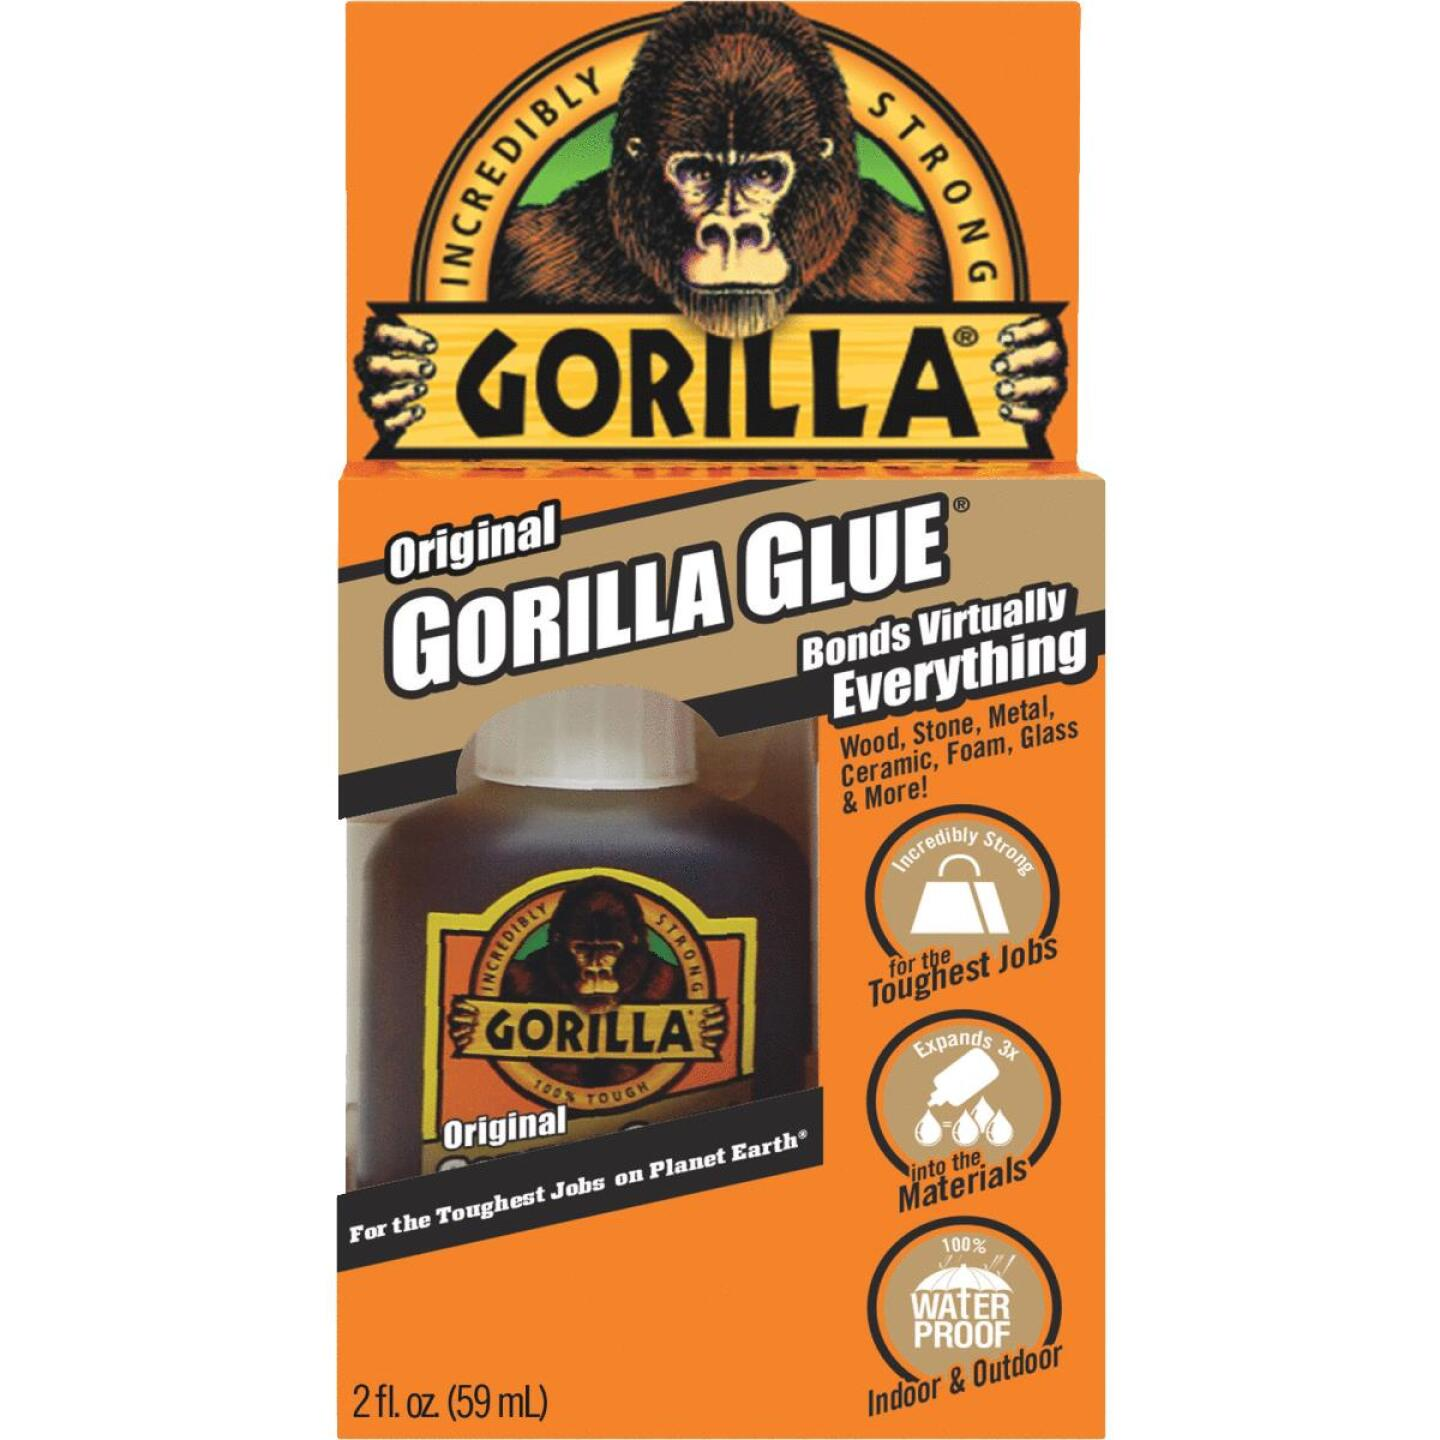 Gorilla 2 Oz. Original All-Purpose Glue Image 1